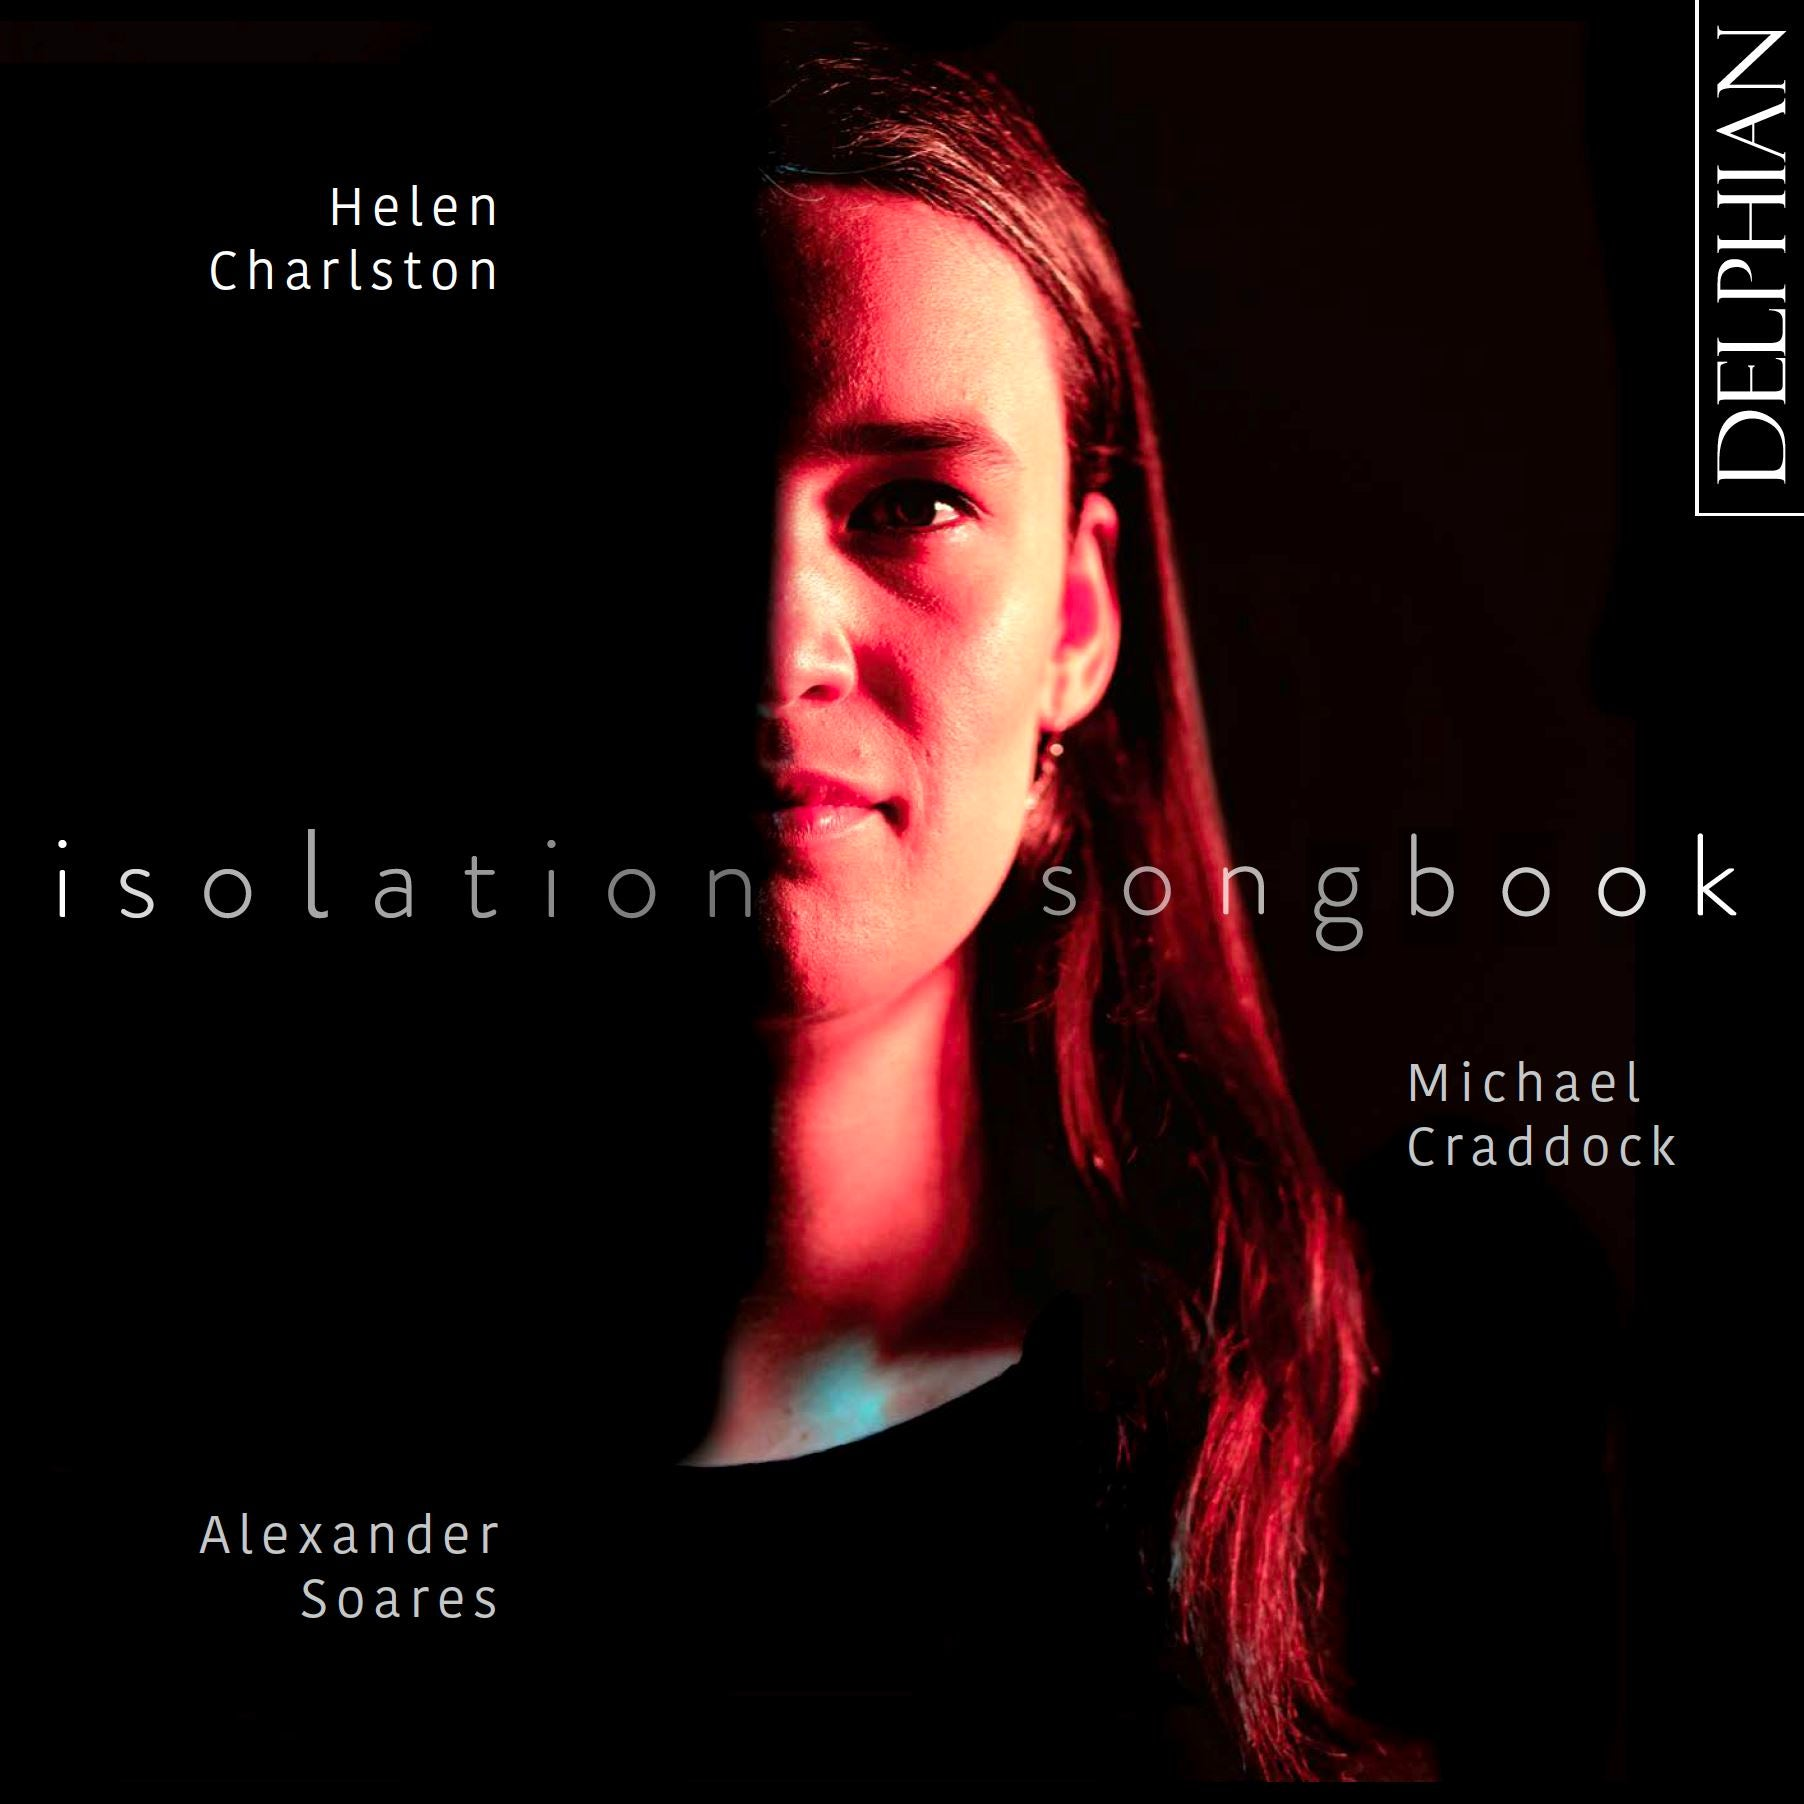 Isolation Songbook